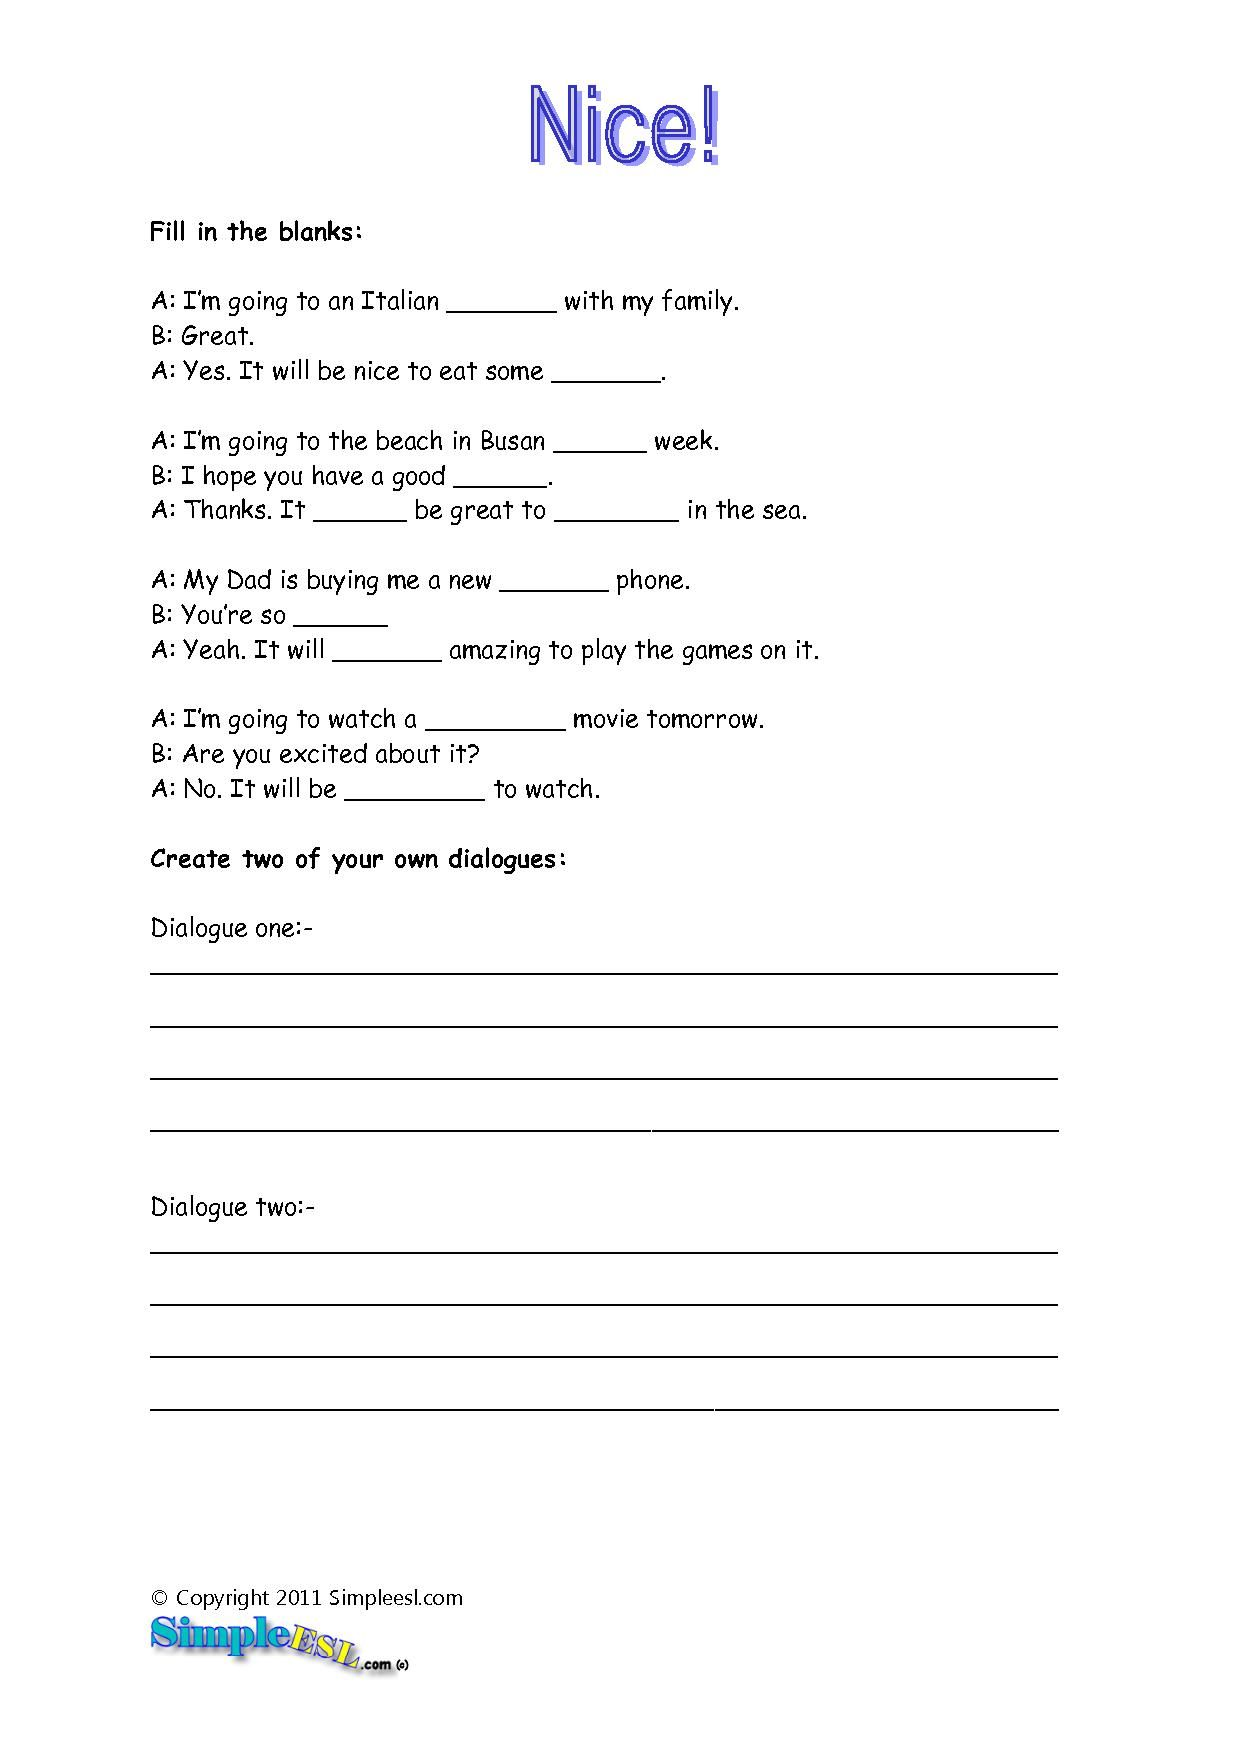 Printable English Language Arts Worksheets From Super Teacher Worksheets Description From